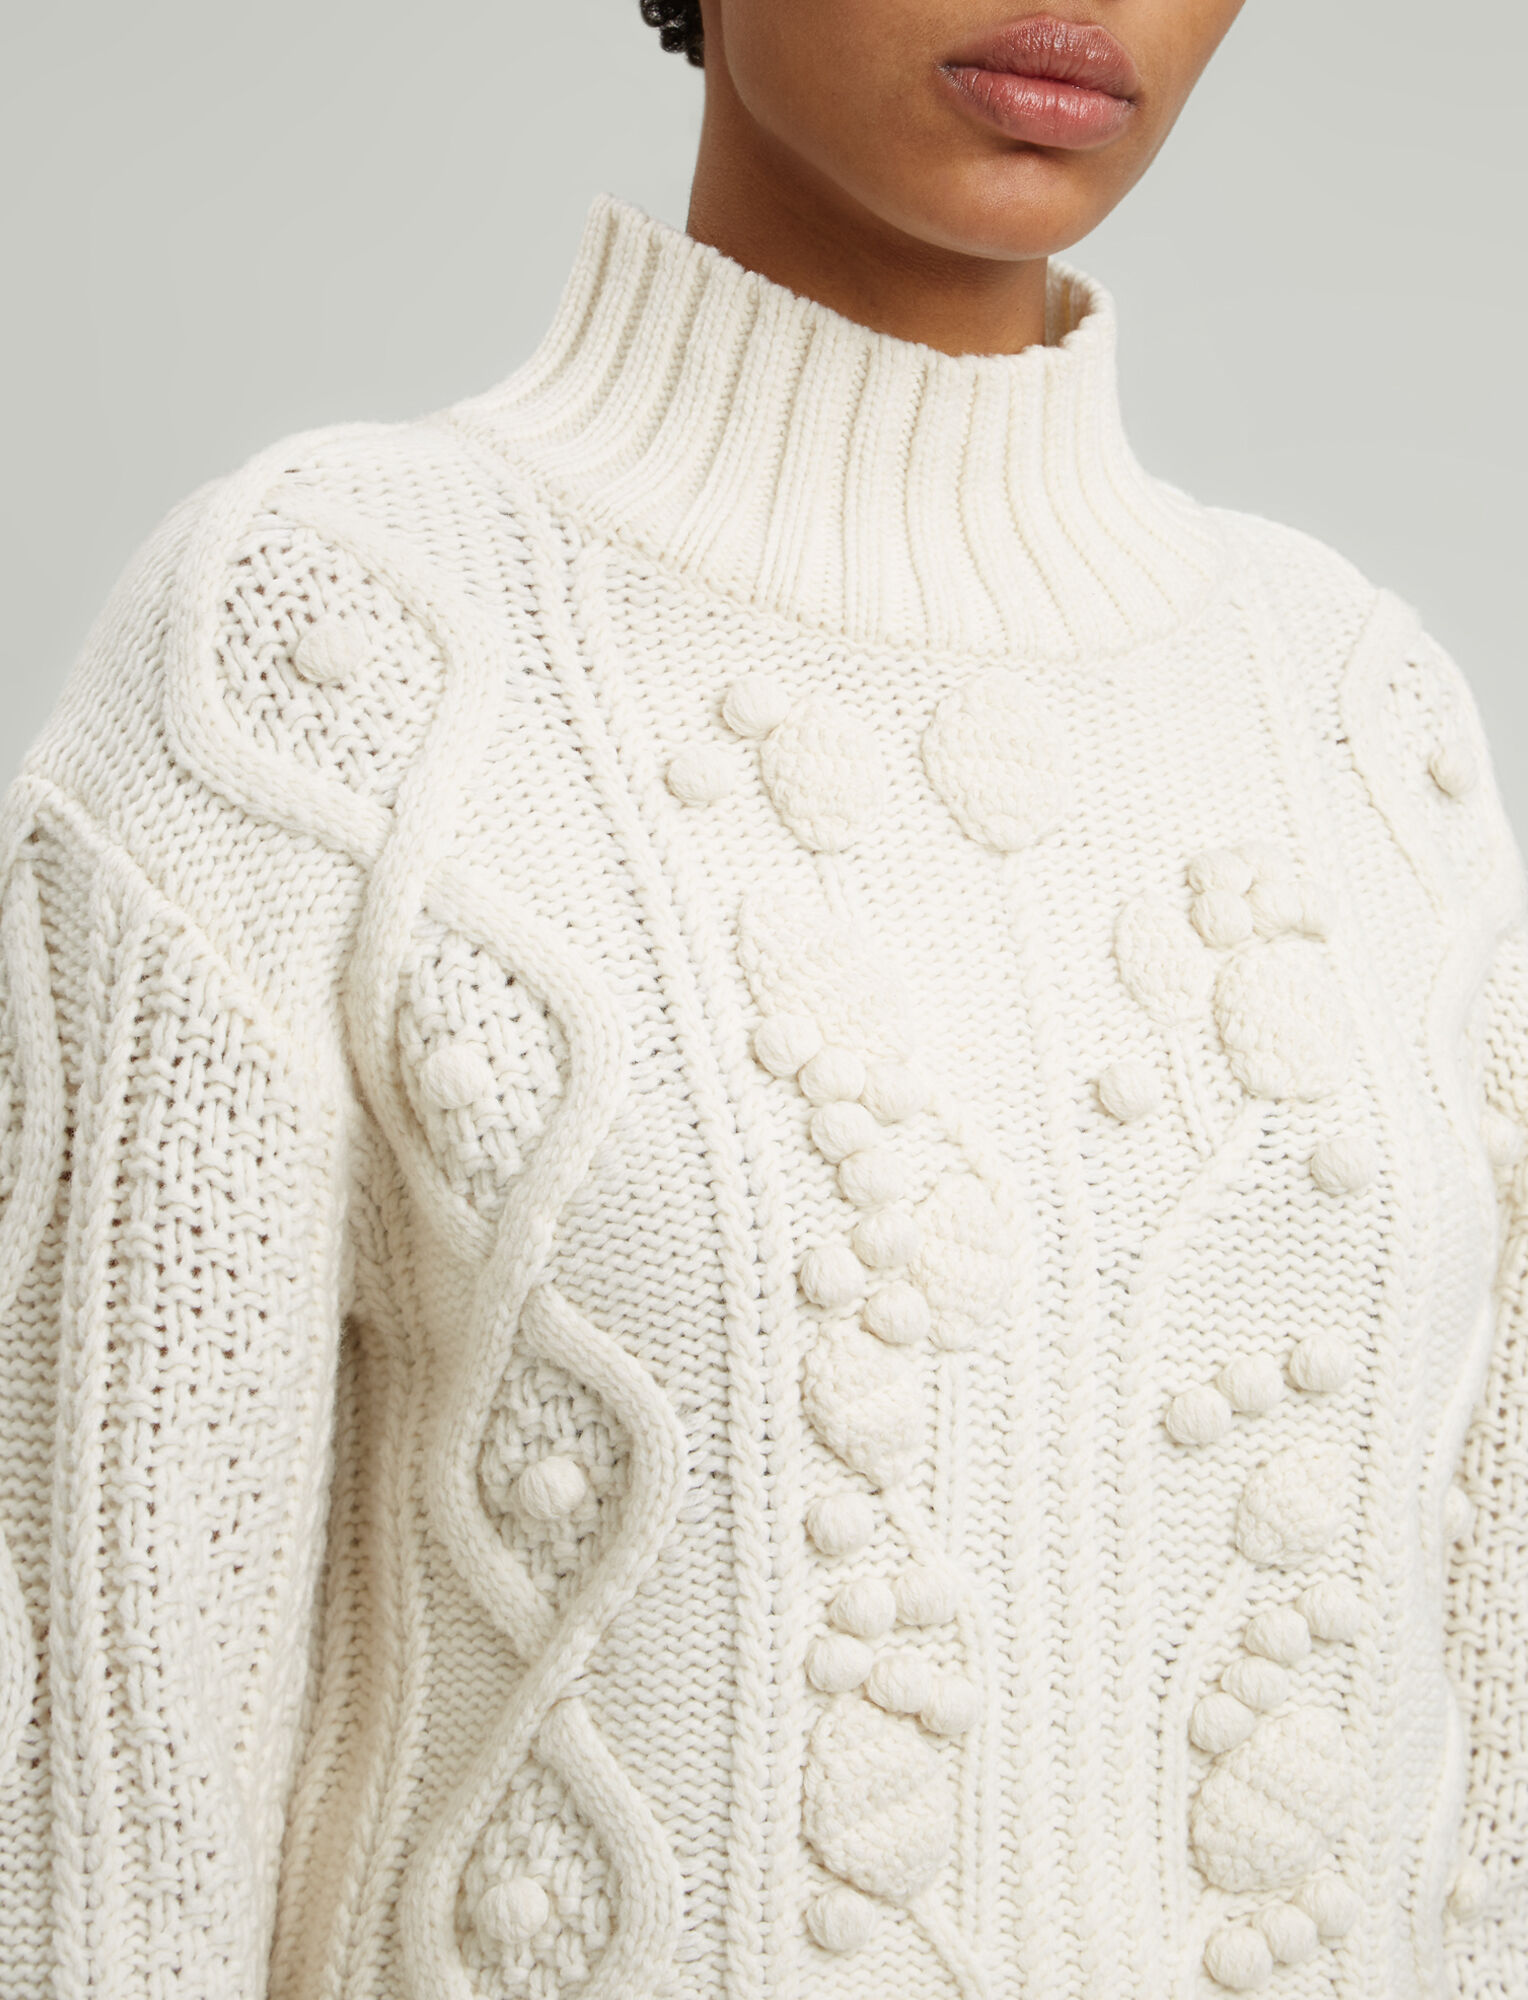 Joseph, Cropped Wool Cable Knit, in ECRU